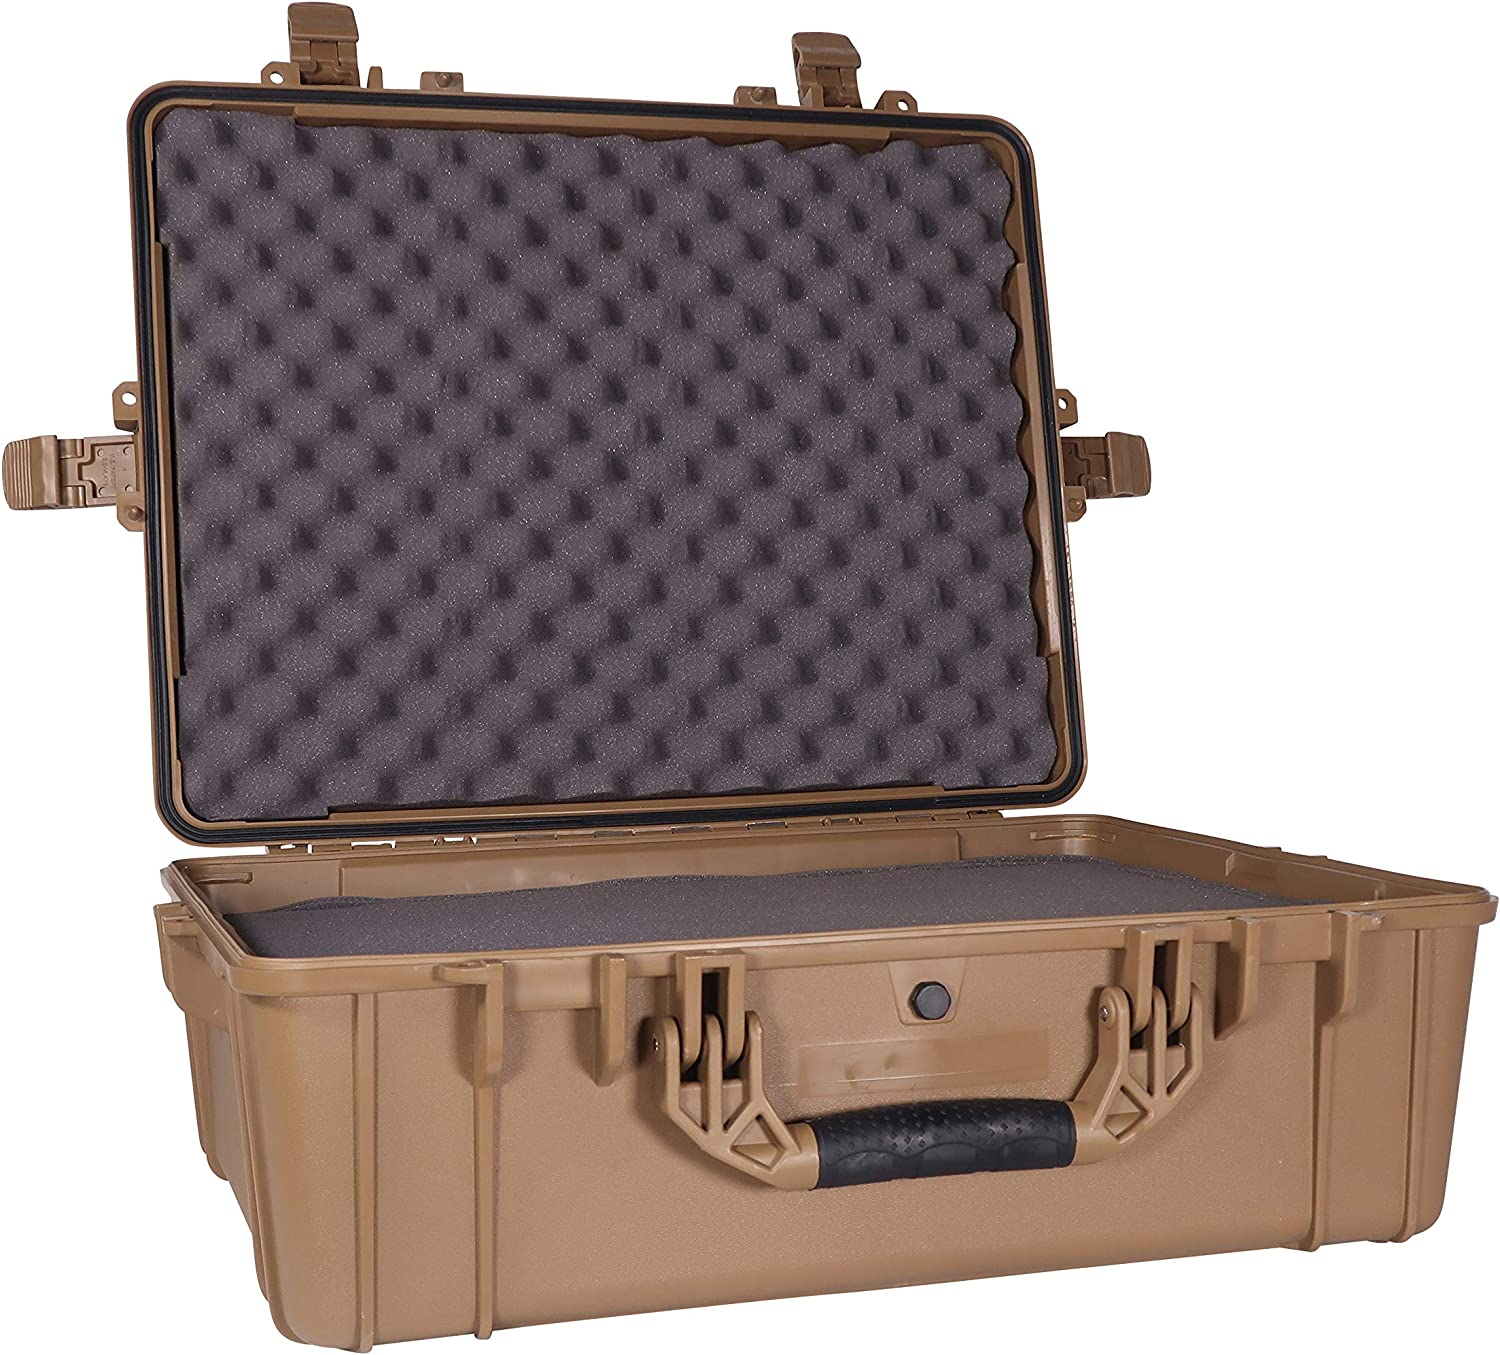 """Condition 1 25"""" XL Waterproof Protective Hard Case, Flat Dark Earth - 25"""" x 20"""" x 8"""" #839 IP67 Watertight Dust Proof and Shock Proof TSA Approved Portable Trunk Carrier"""